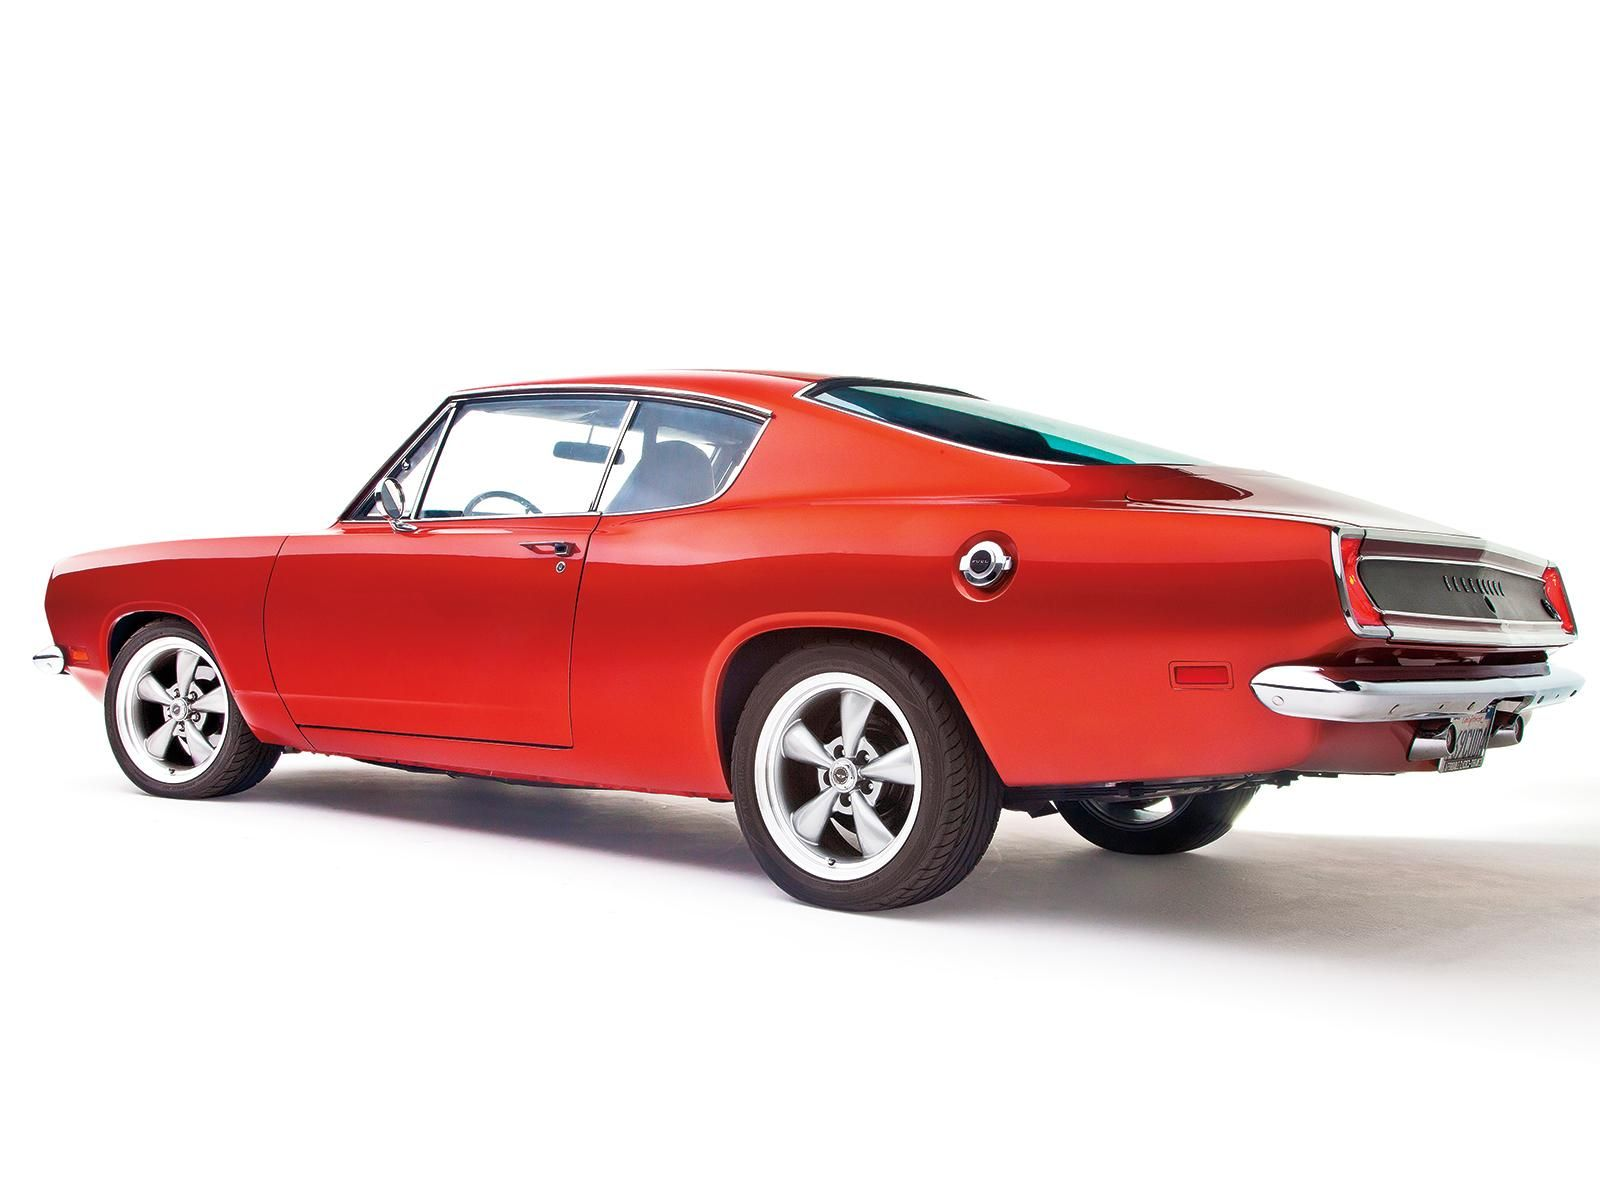 1969 plymouth barracuda maintenance restoration of old vintage vehicles the material for new